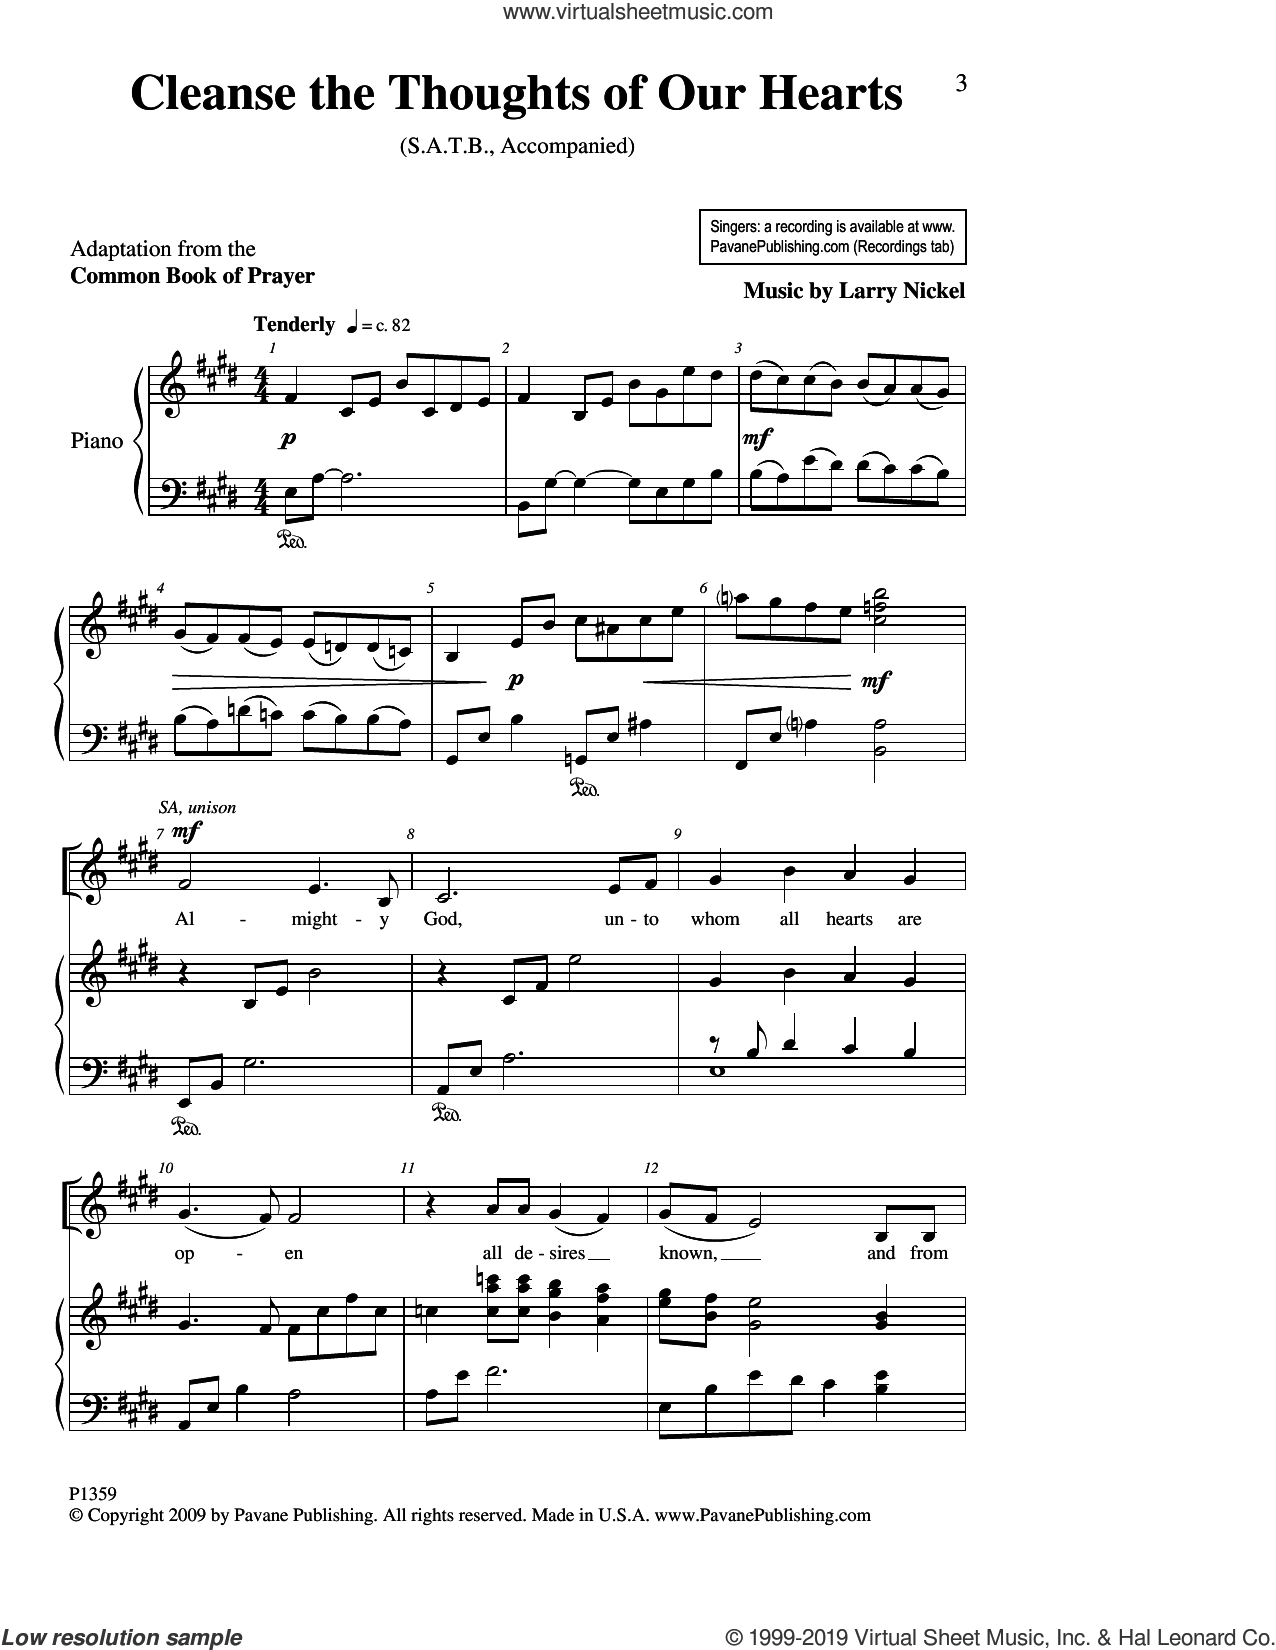 Cleanse The Thoughts Of Our Hearts sheet music for choir (SATB: soprano, alto, tenor, bass) by Larry Nickel, intermediate skill level